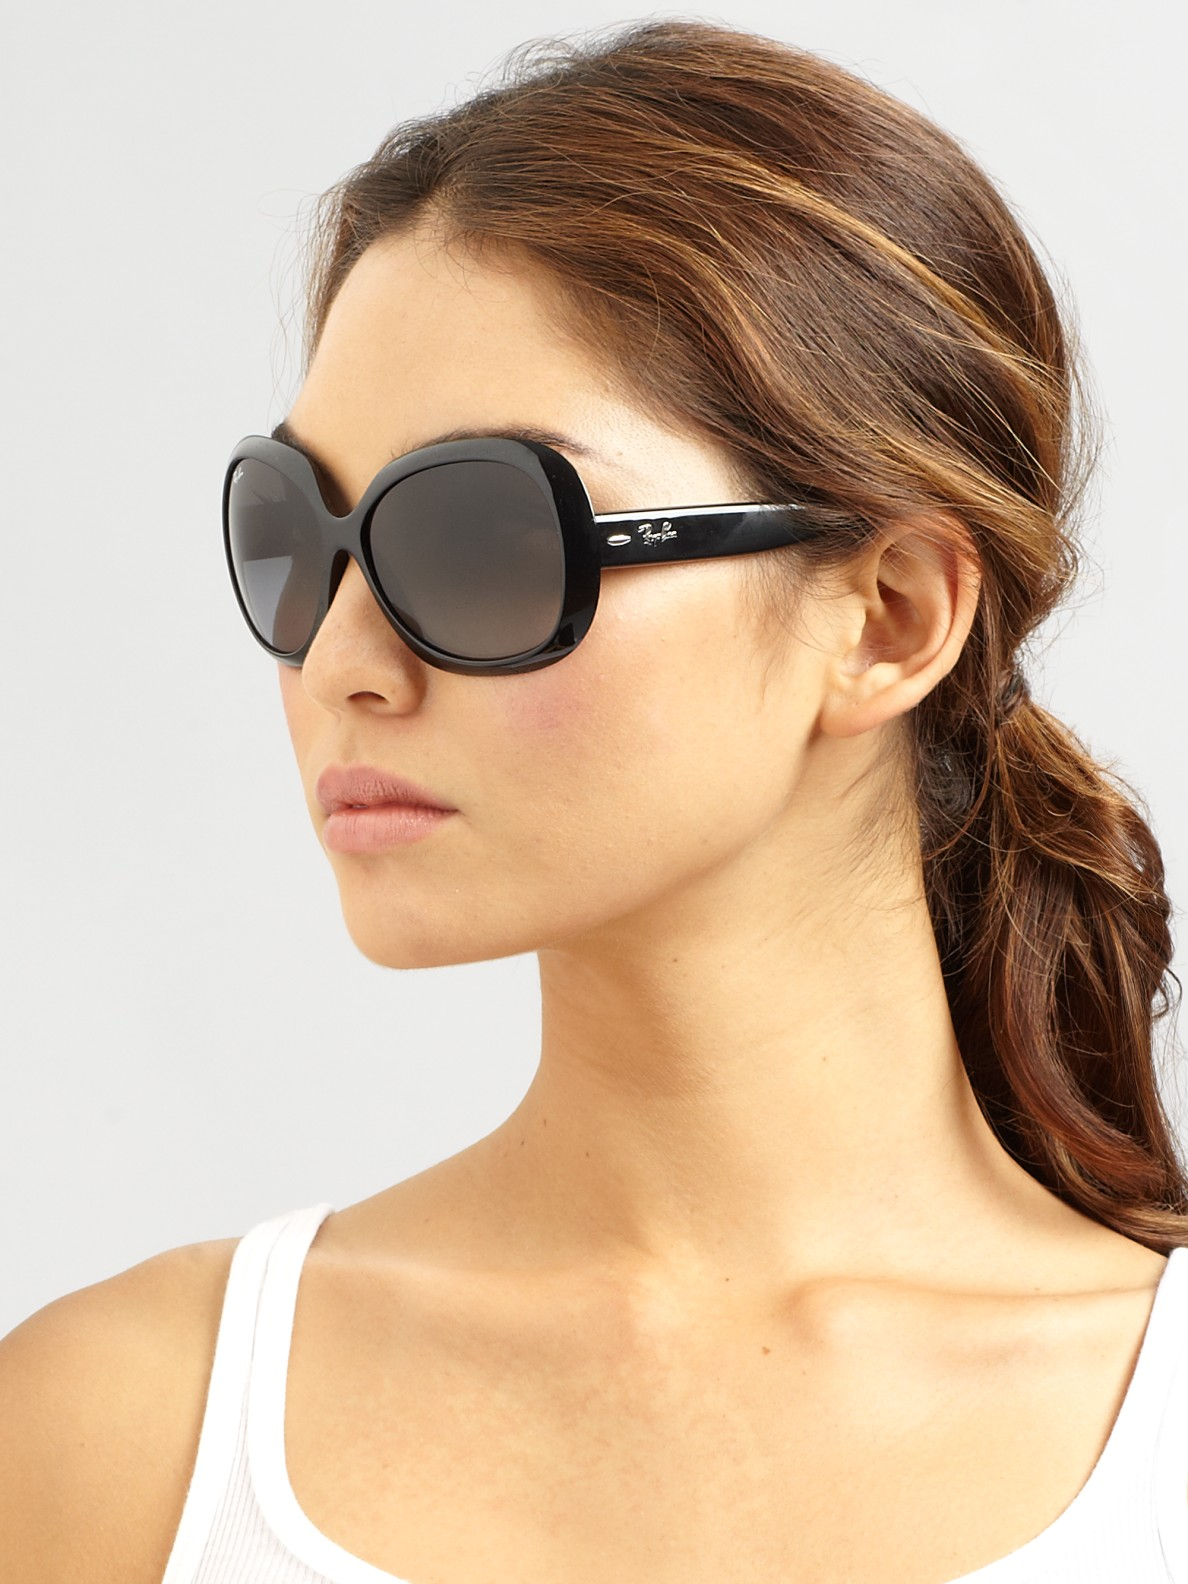 a0d4818b48fe0 Ray-Ban Women s Vintage Oversized Round Jackie Ohh Sunglasses ...